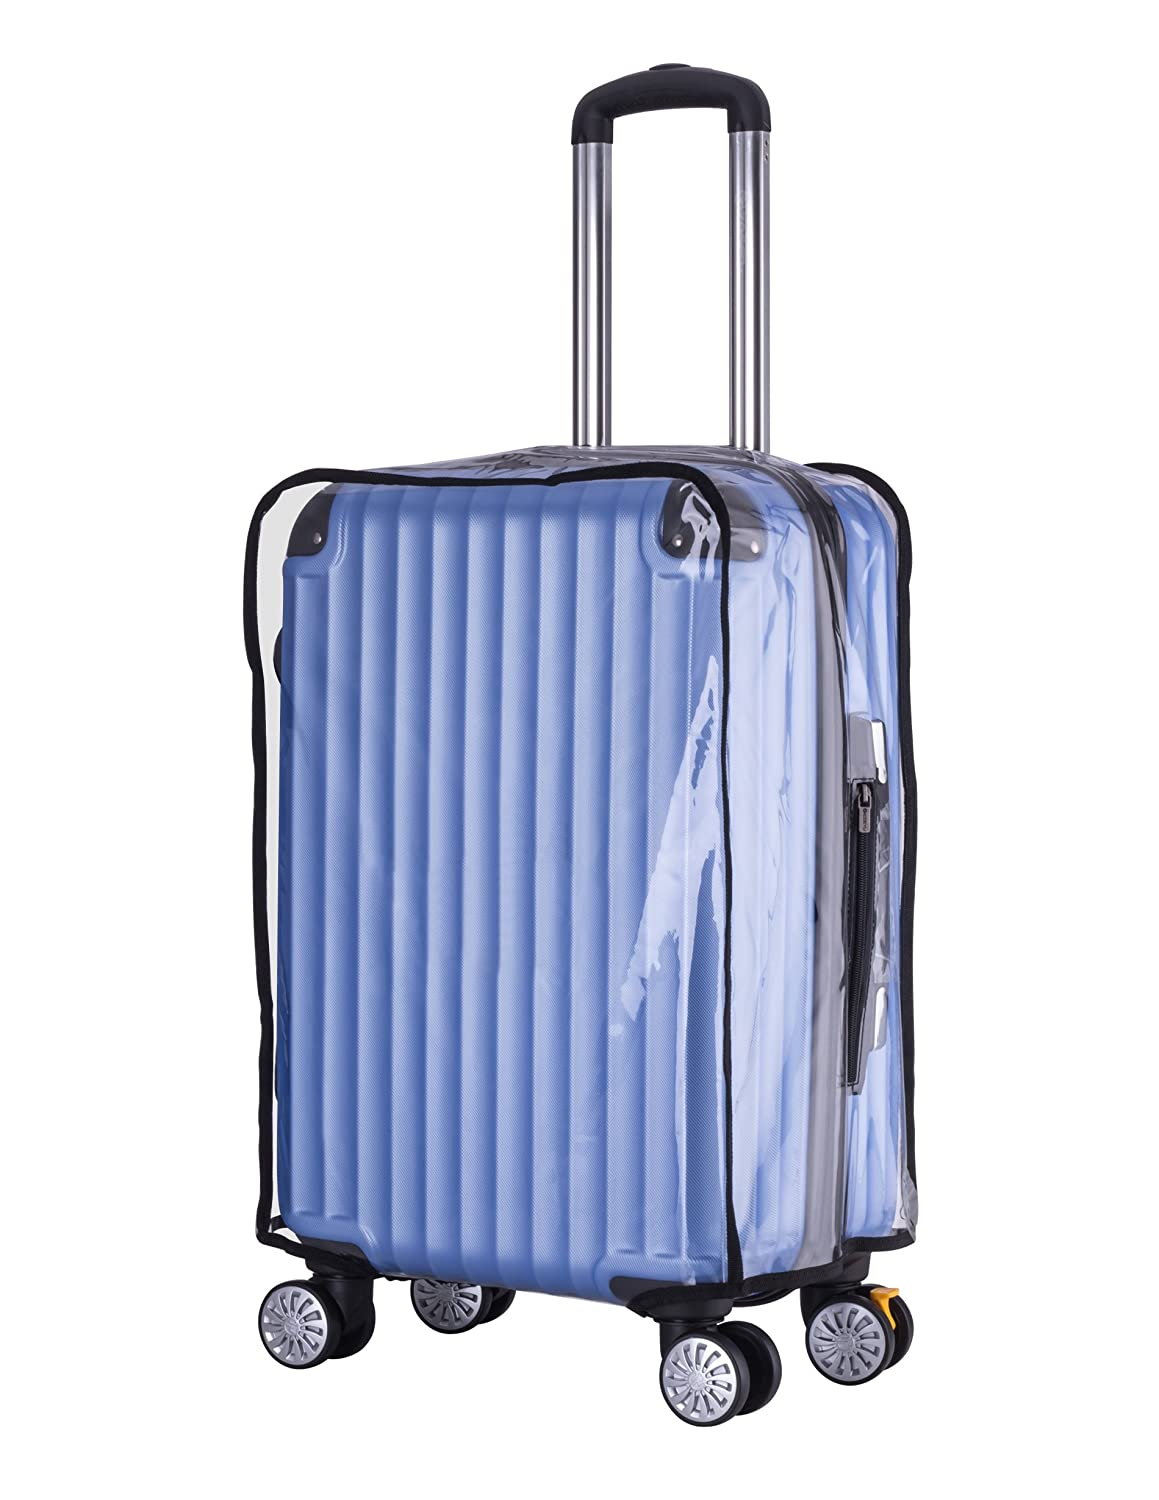 Holly LifePro Travel Waterproof Luggage Clear PVC Cover Protector Suitcase Fits Most 20 to 32 Luggage 01